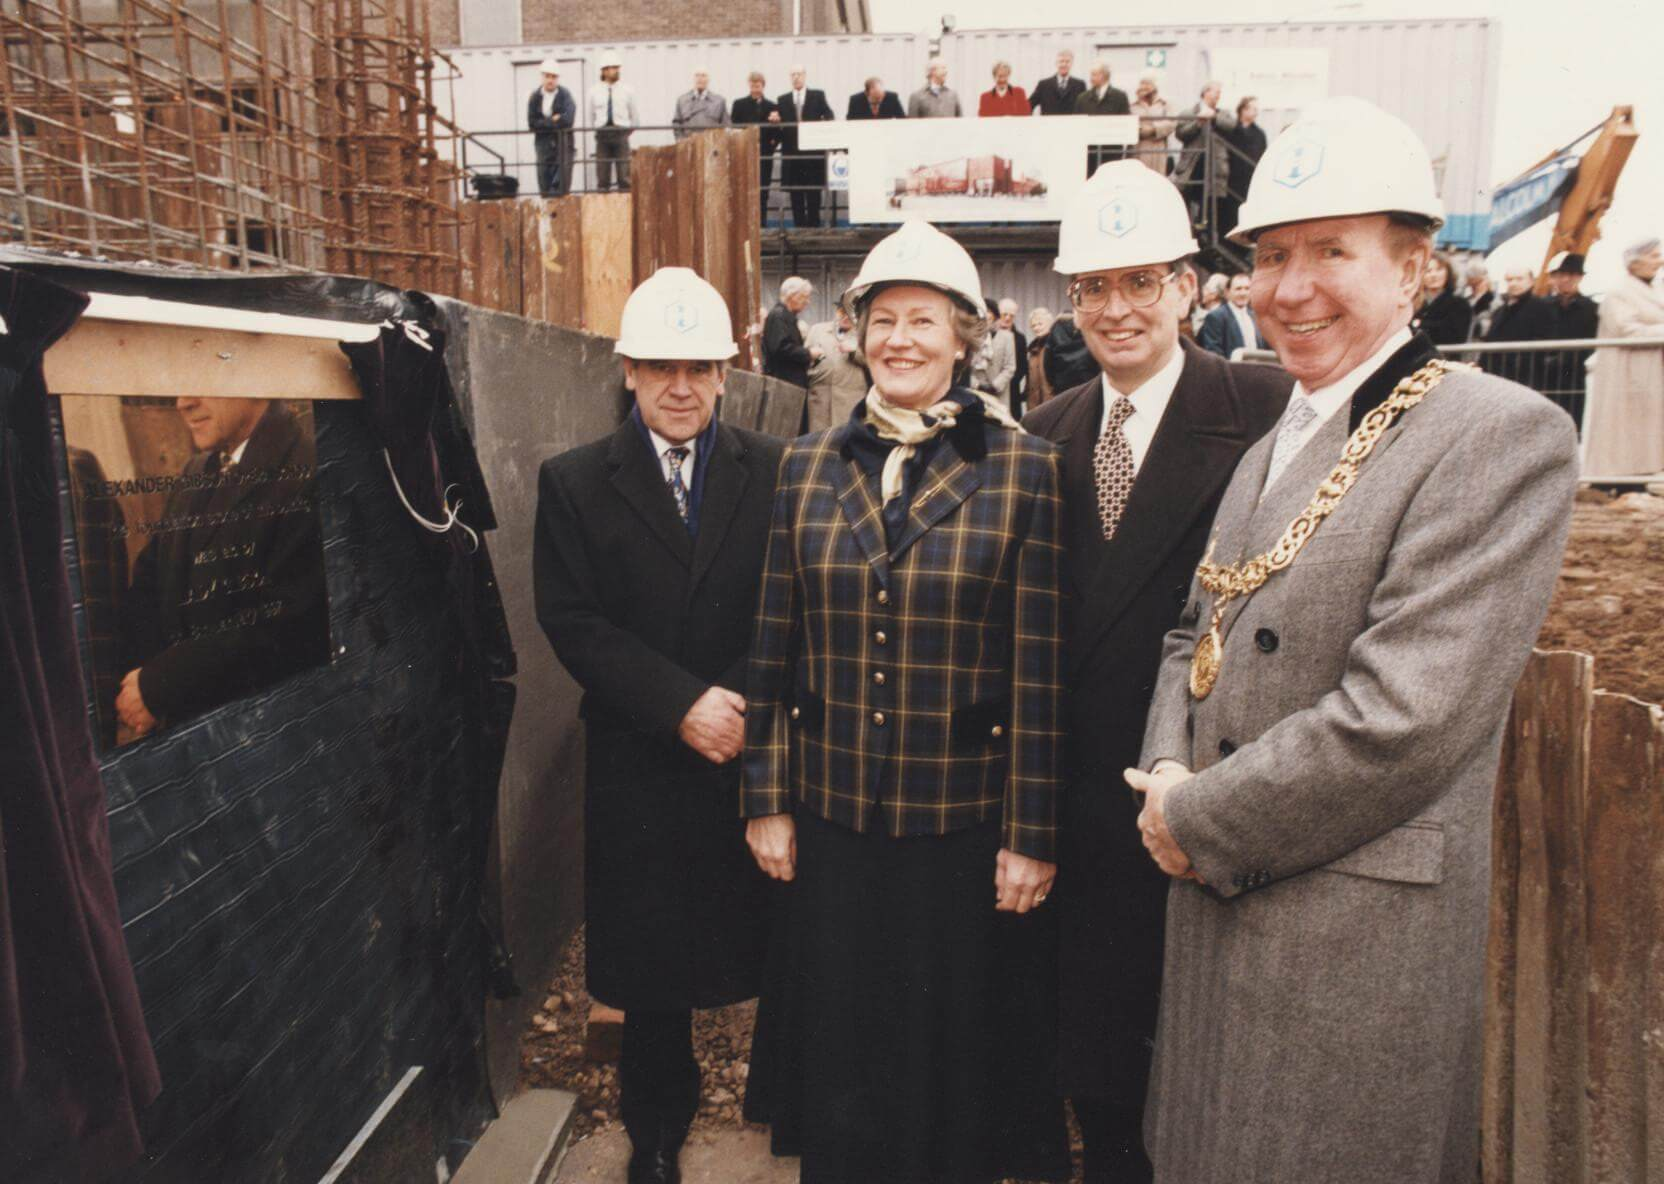 From the RCS Archive: laying of the foundation stone at the construction site of the Alexander Gibson Opera School with (from left to right) Lord Gill, Lady Gibson, Sir Philip Ledger and Lord Provost Pat Lally.